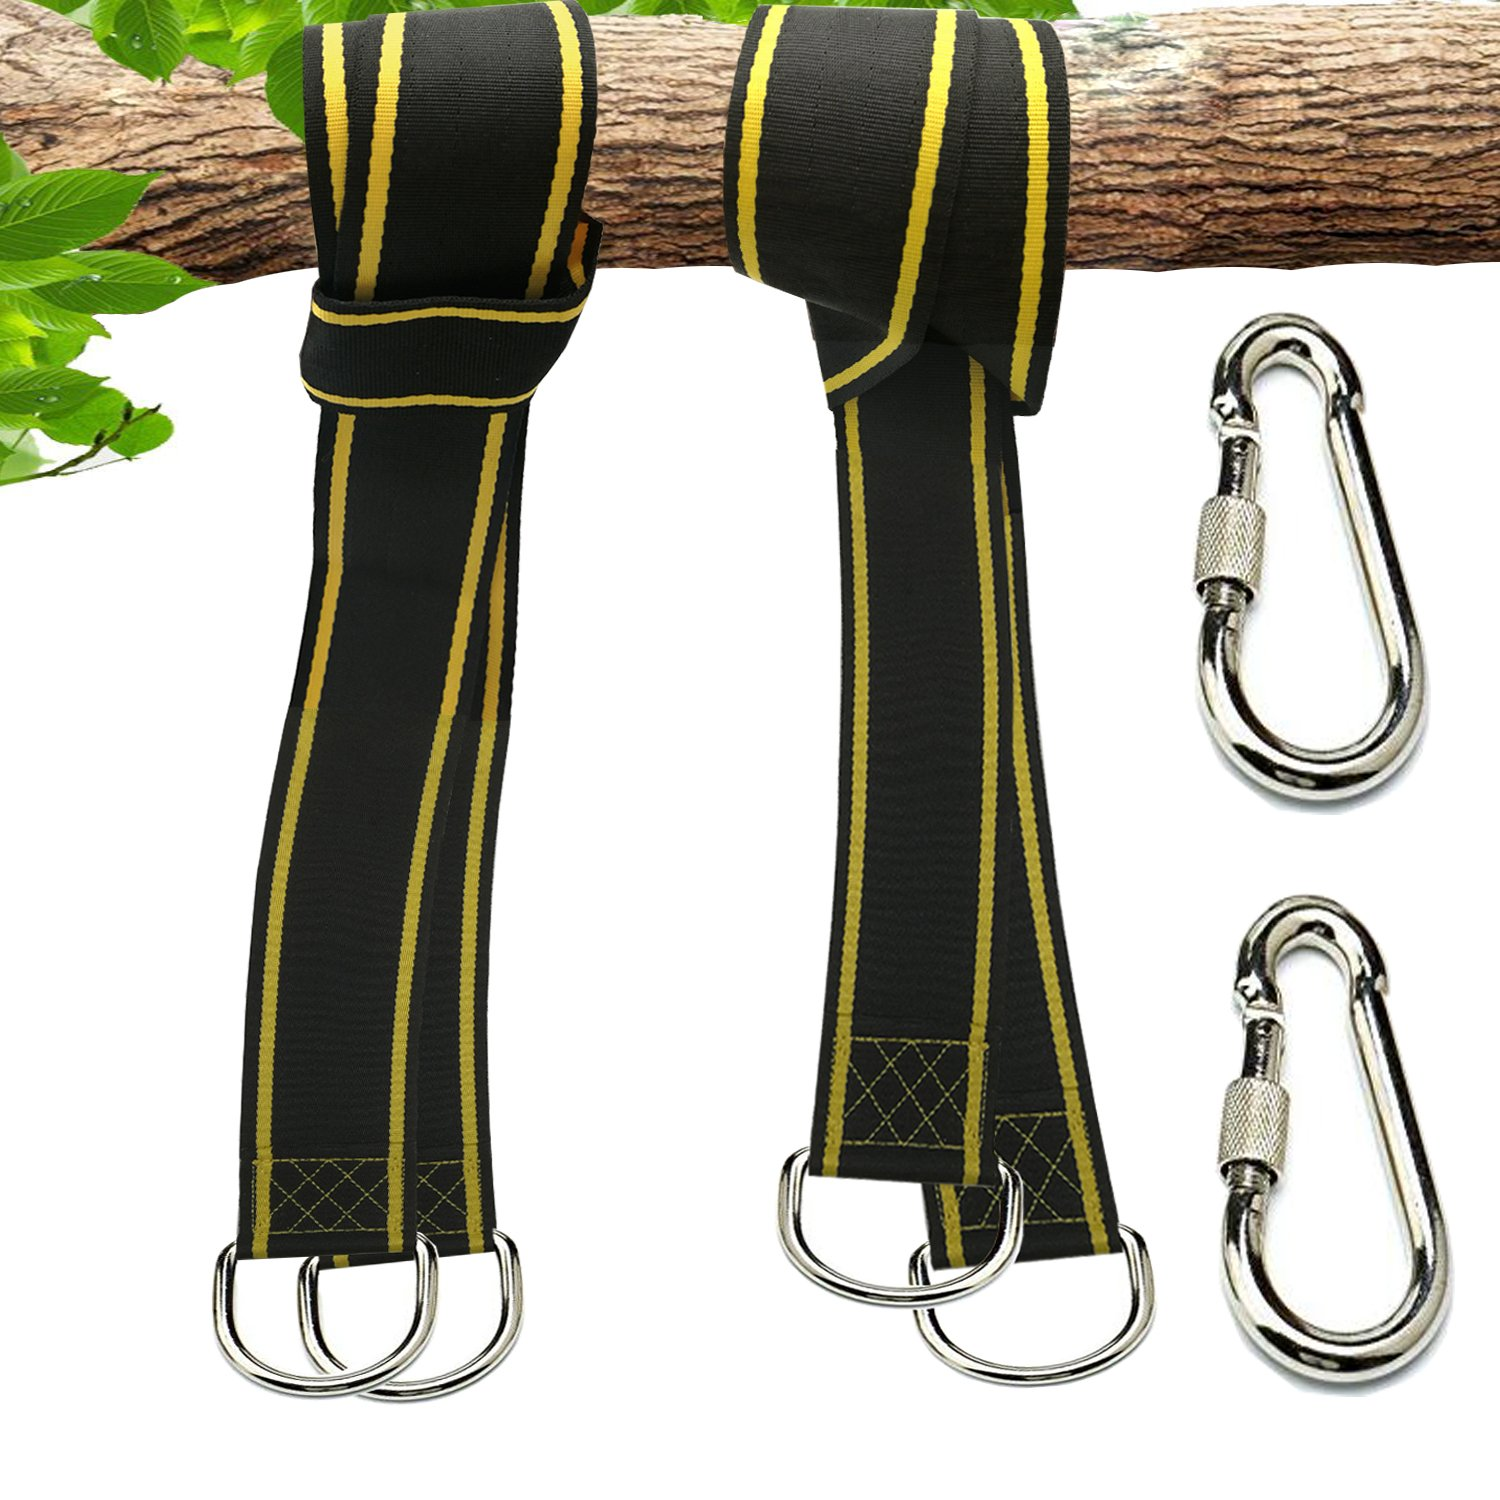 Lian-Brillian Swing Hanger/Hammock Straps Hanging set -2 10 Feet Extra Long Straps -Holds 2600Ibs-Easy to Hang Installation to Tree - Bonus with 2 Safer Lock Snap Carabiner Hooks and a Storage Bag